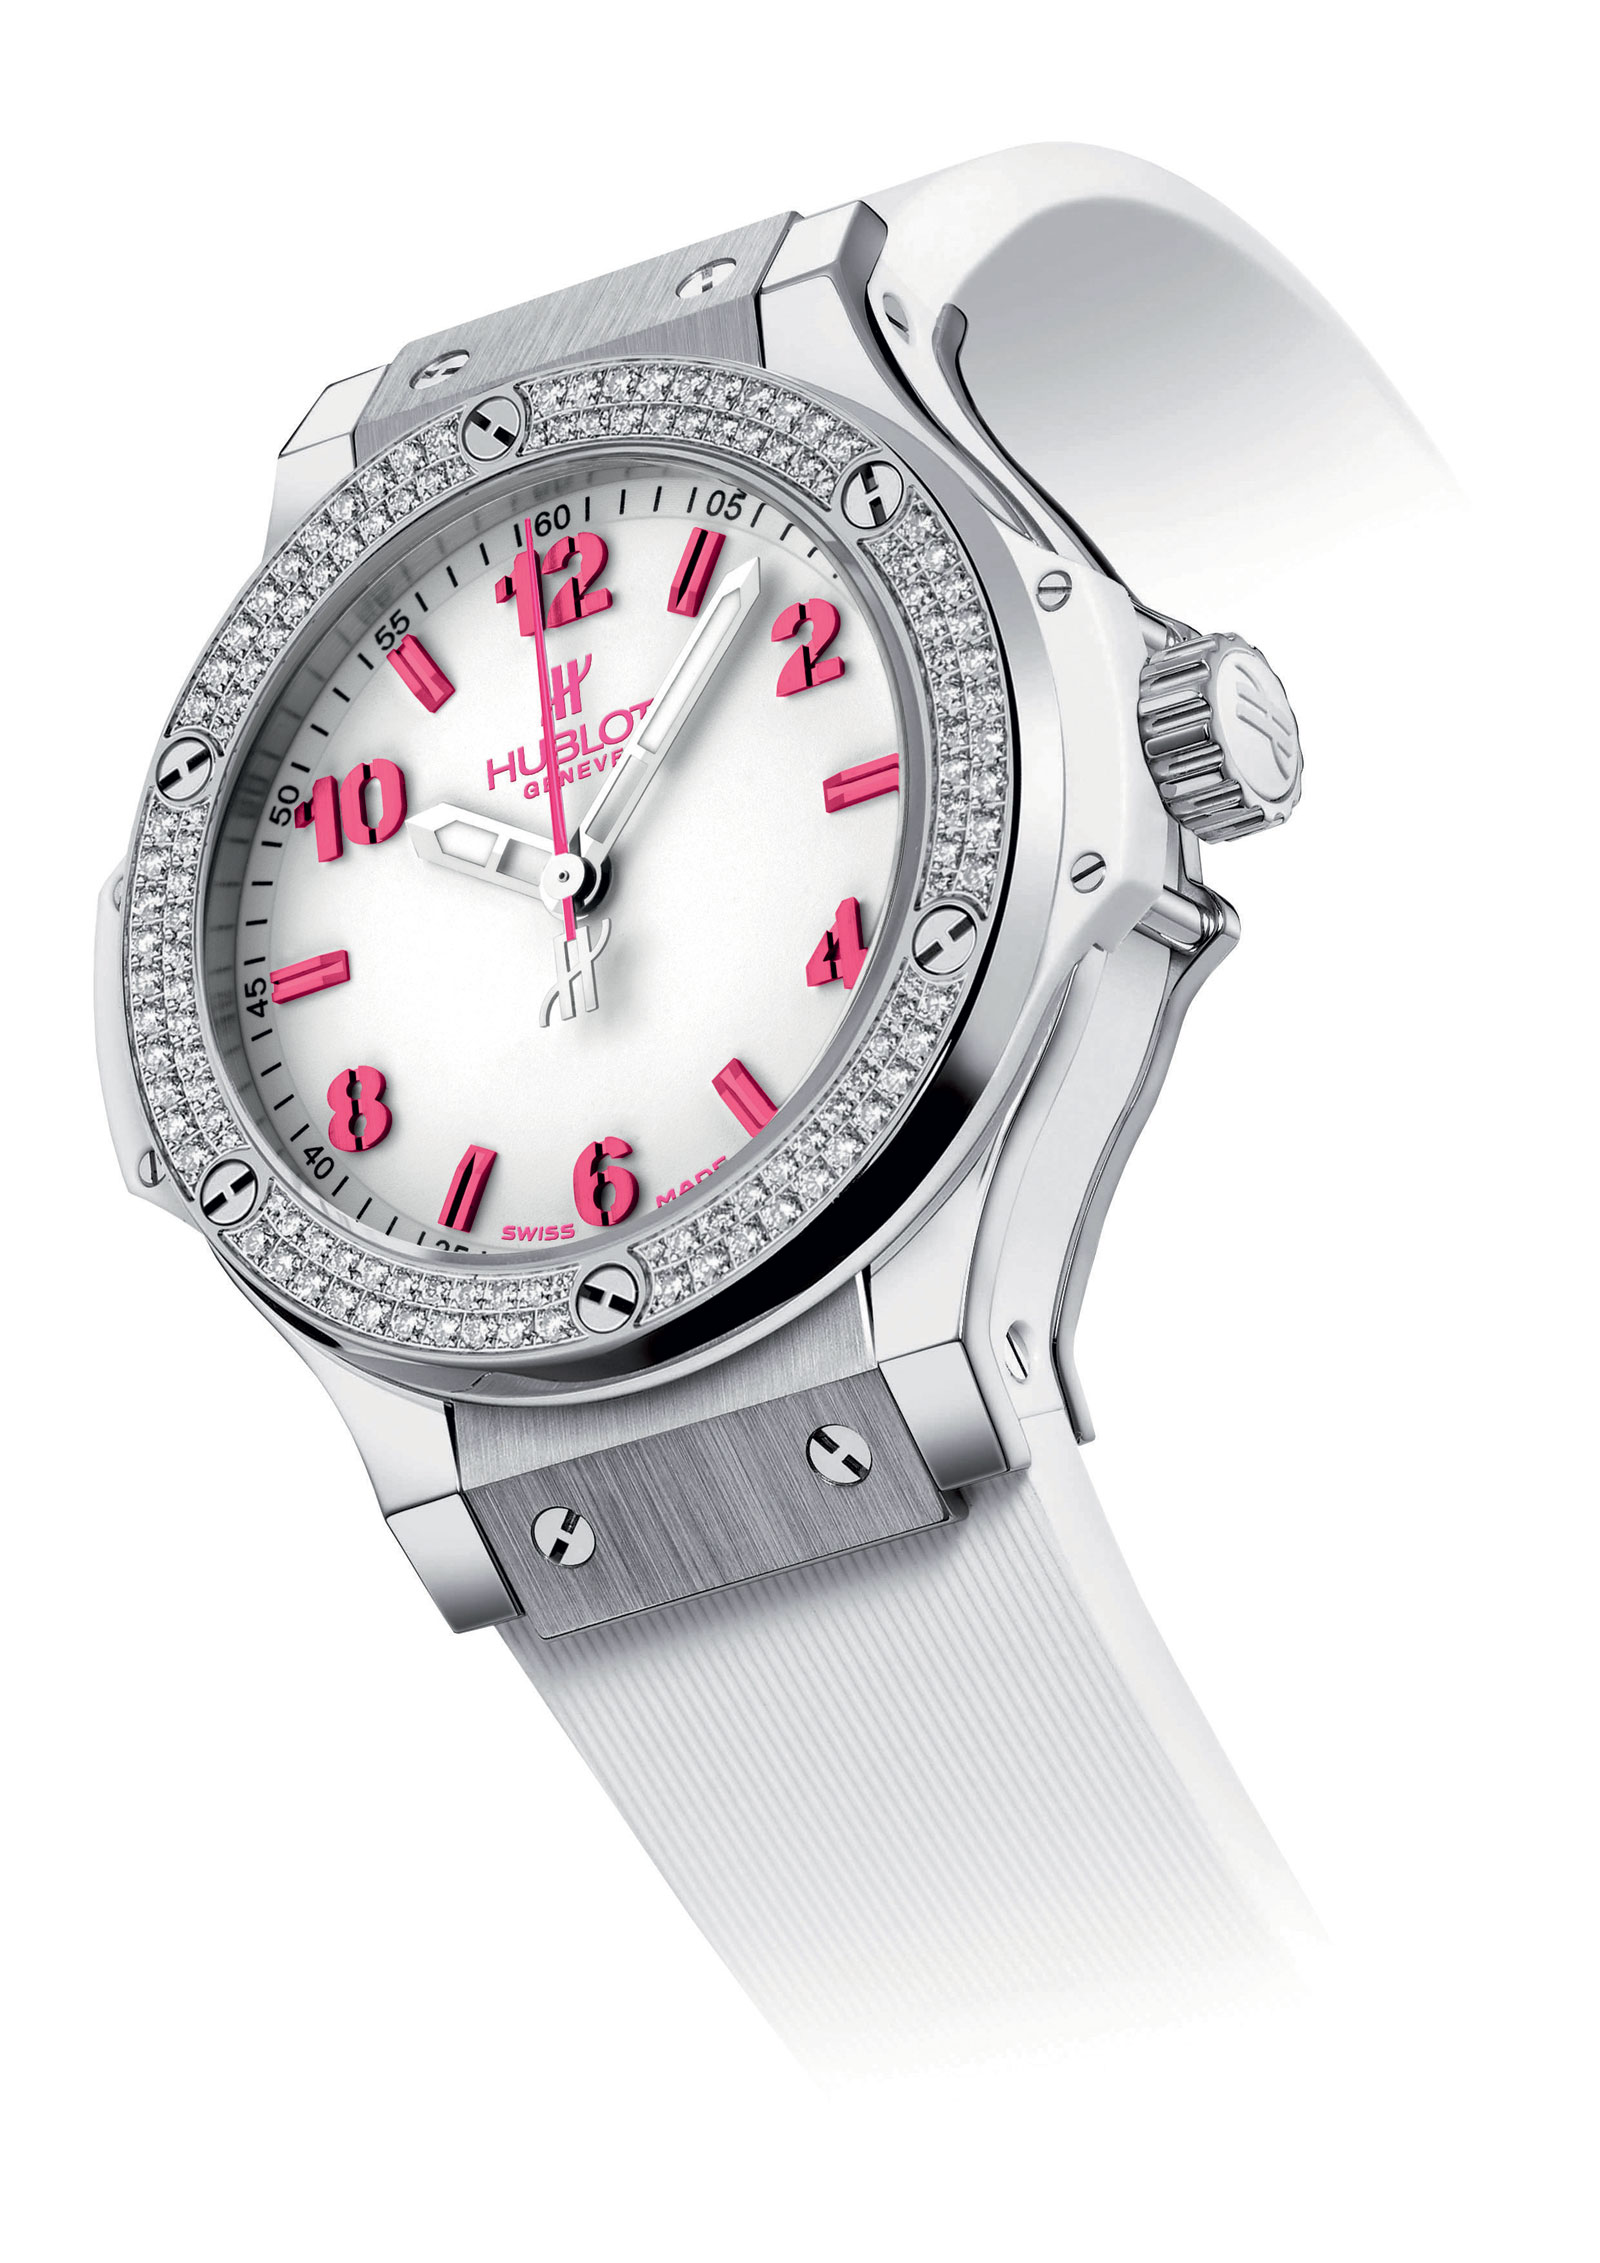 Womens Hublot Watches  Humble Watches